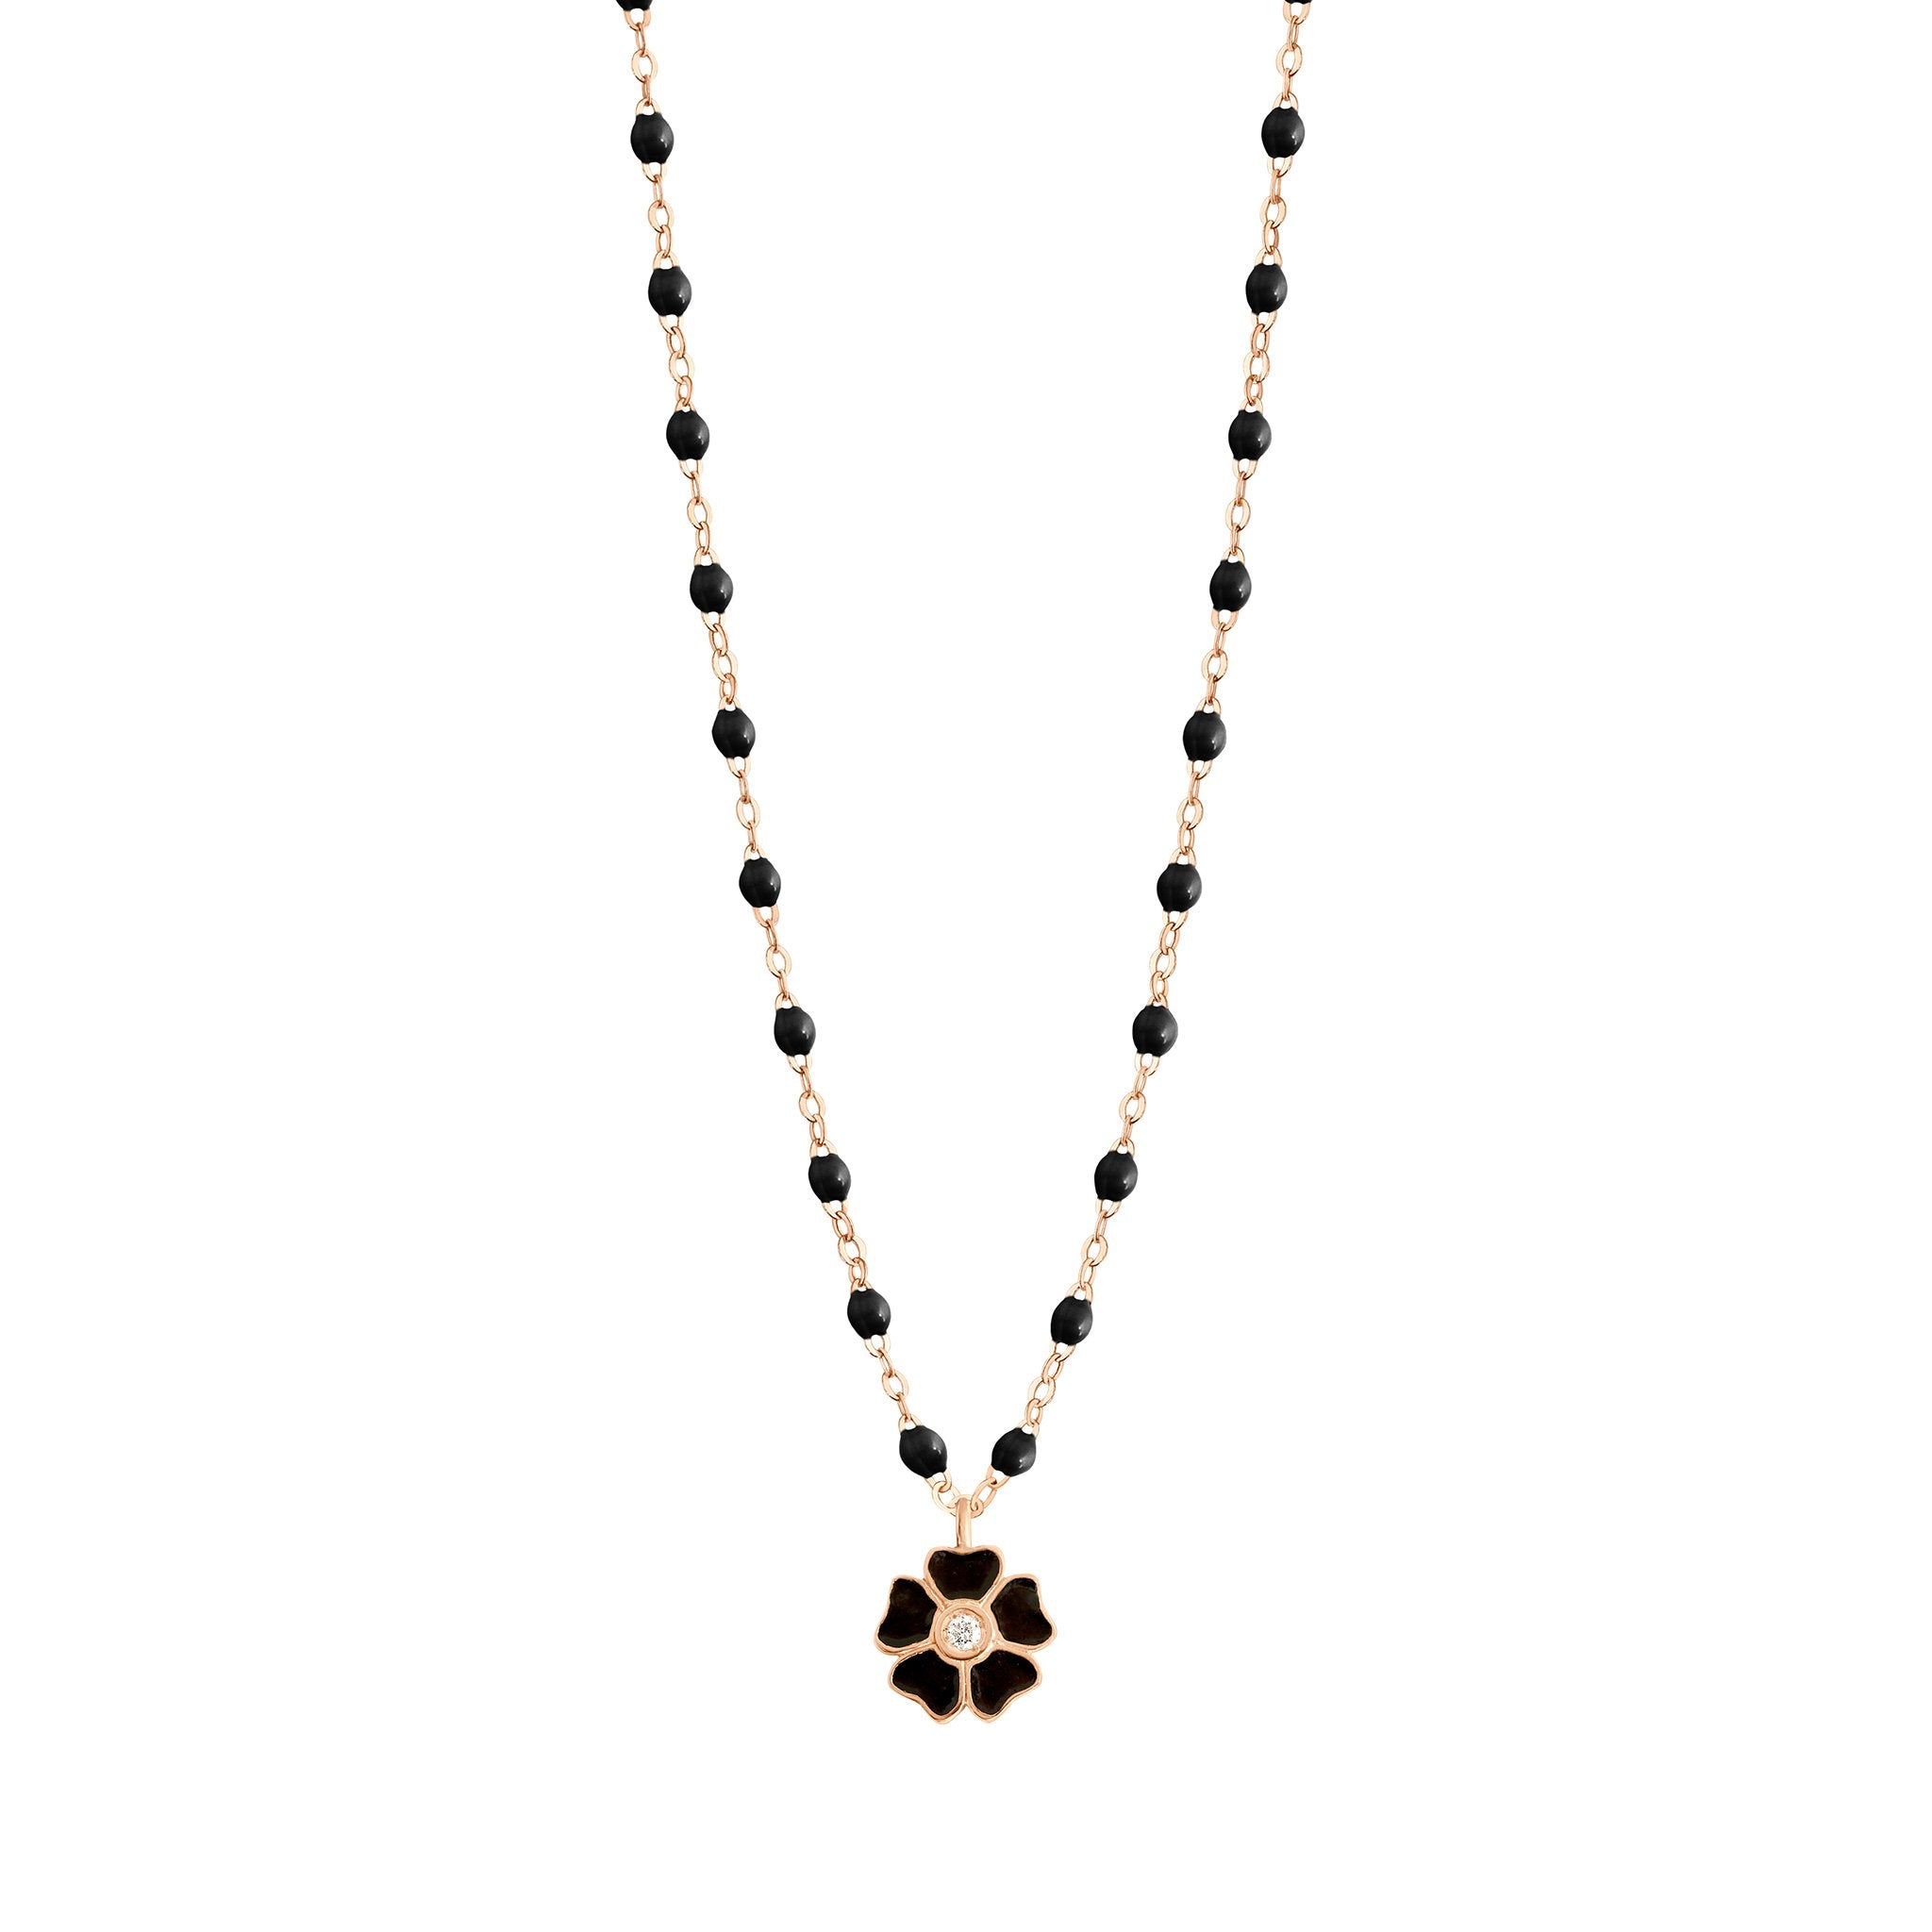 Gigi Clozeau - Flower Classic Gigi Black diamond necklace, Rose Gold, 16.5""